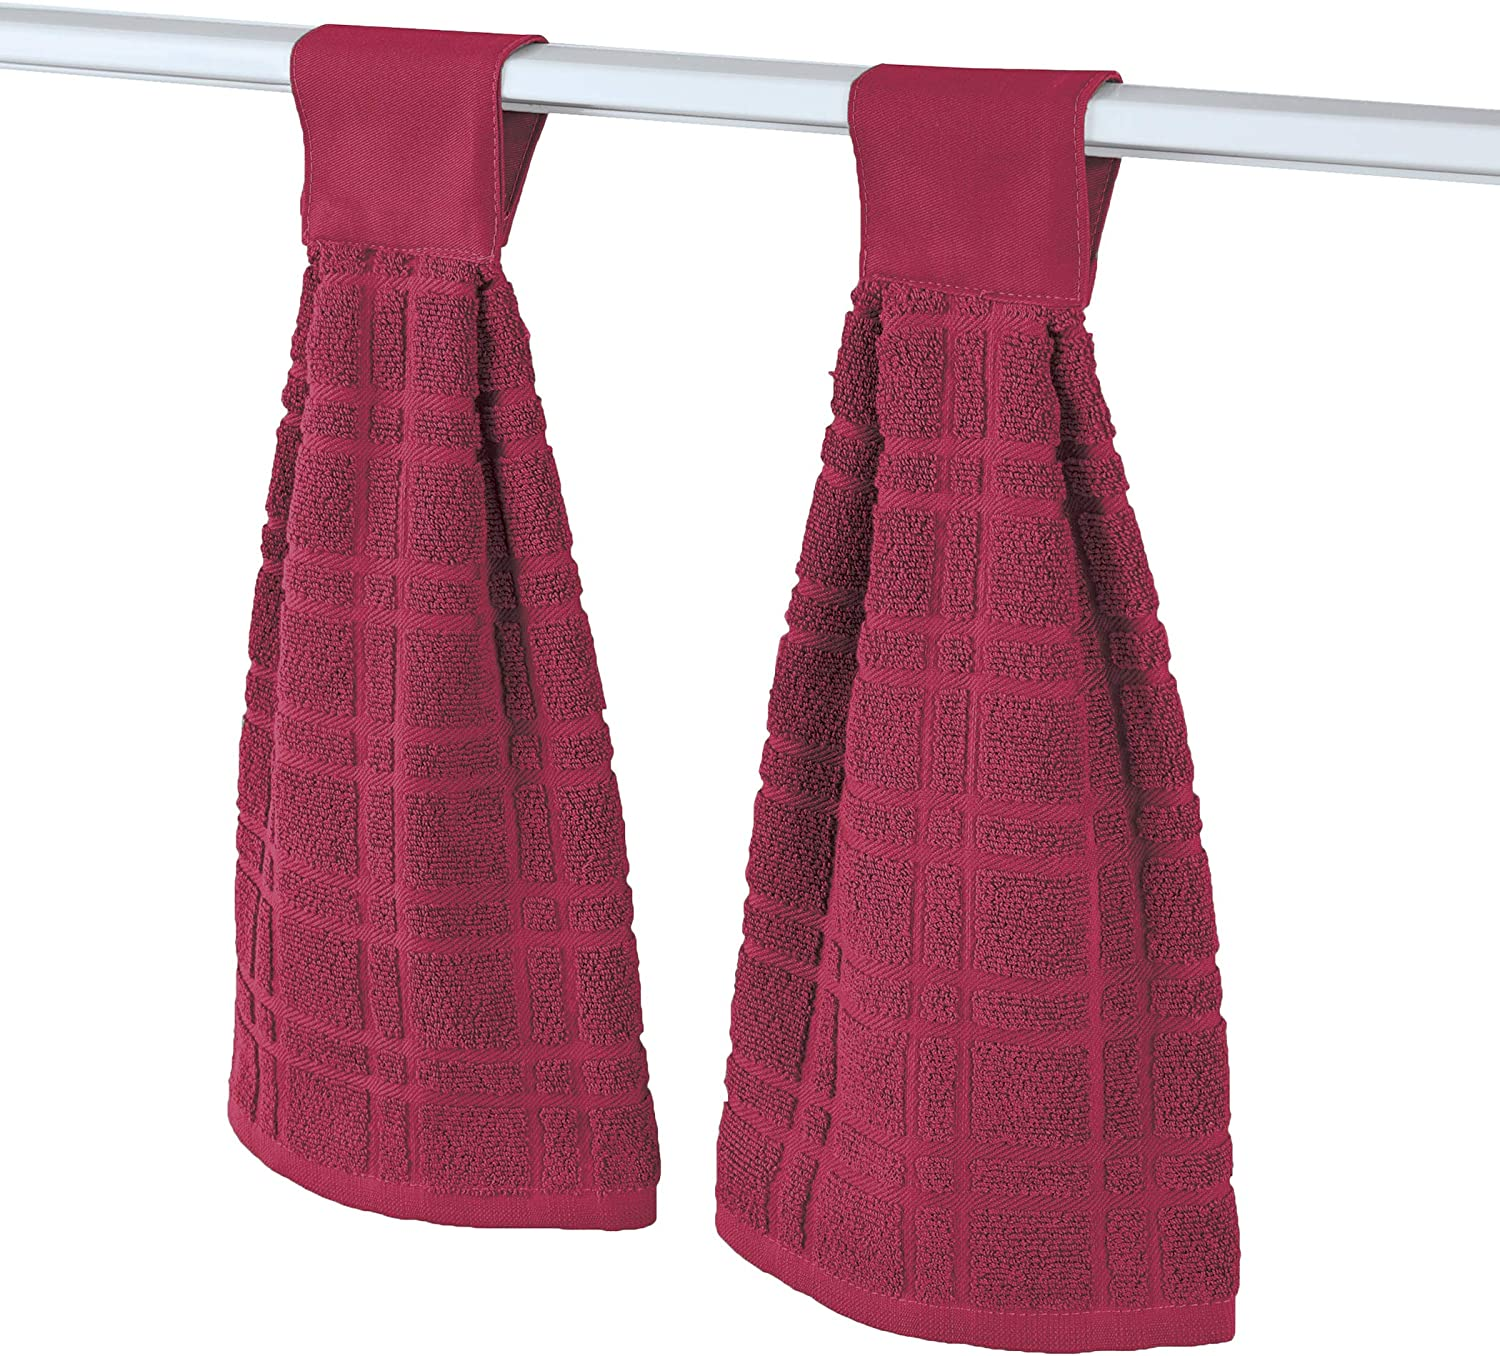 Hanging Tufted Design Kitchen Towels - Set 2 Top Tab Cheap mail order shopping Touch of Ranking TOP8